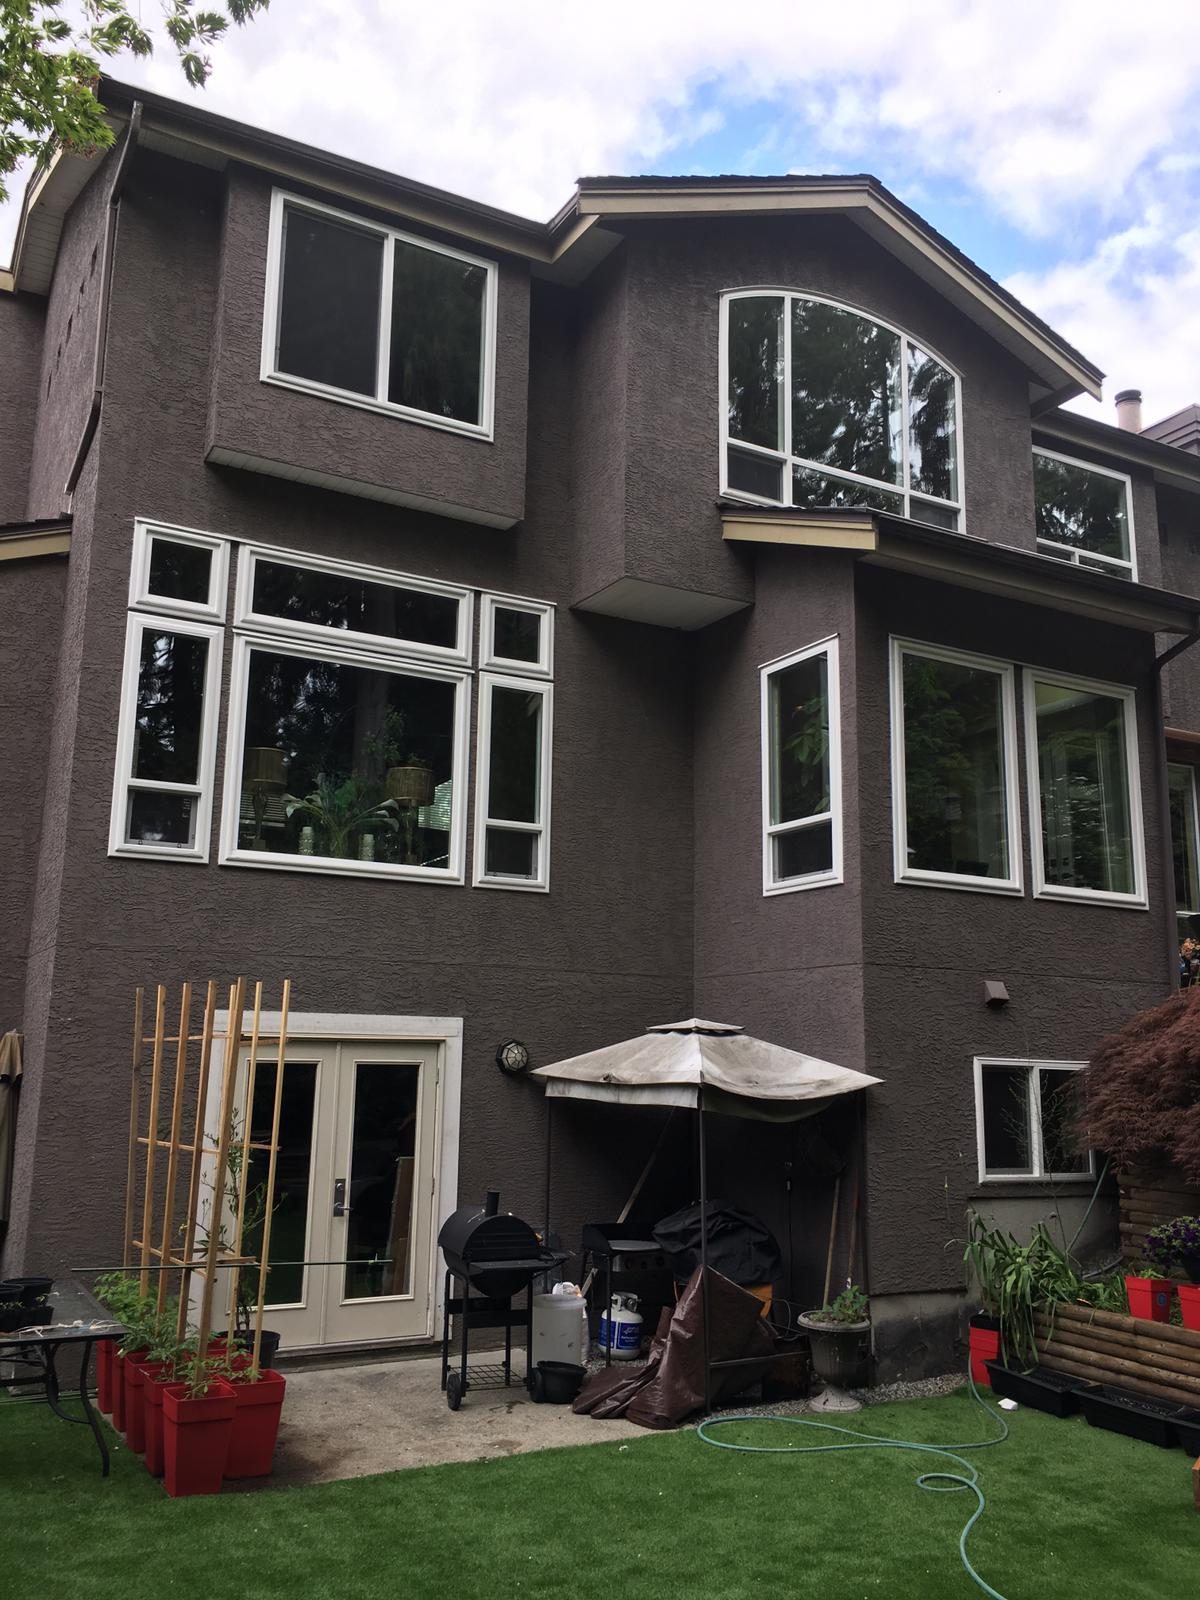 Image of home with A1 Windows installed